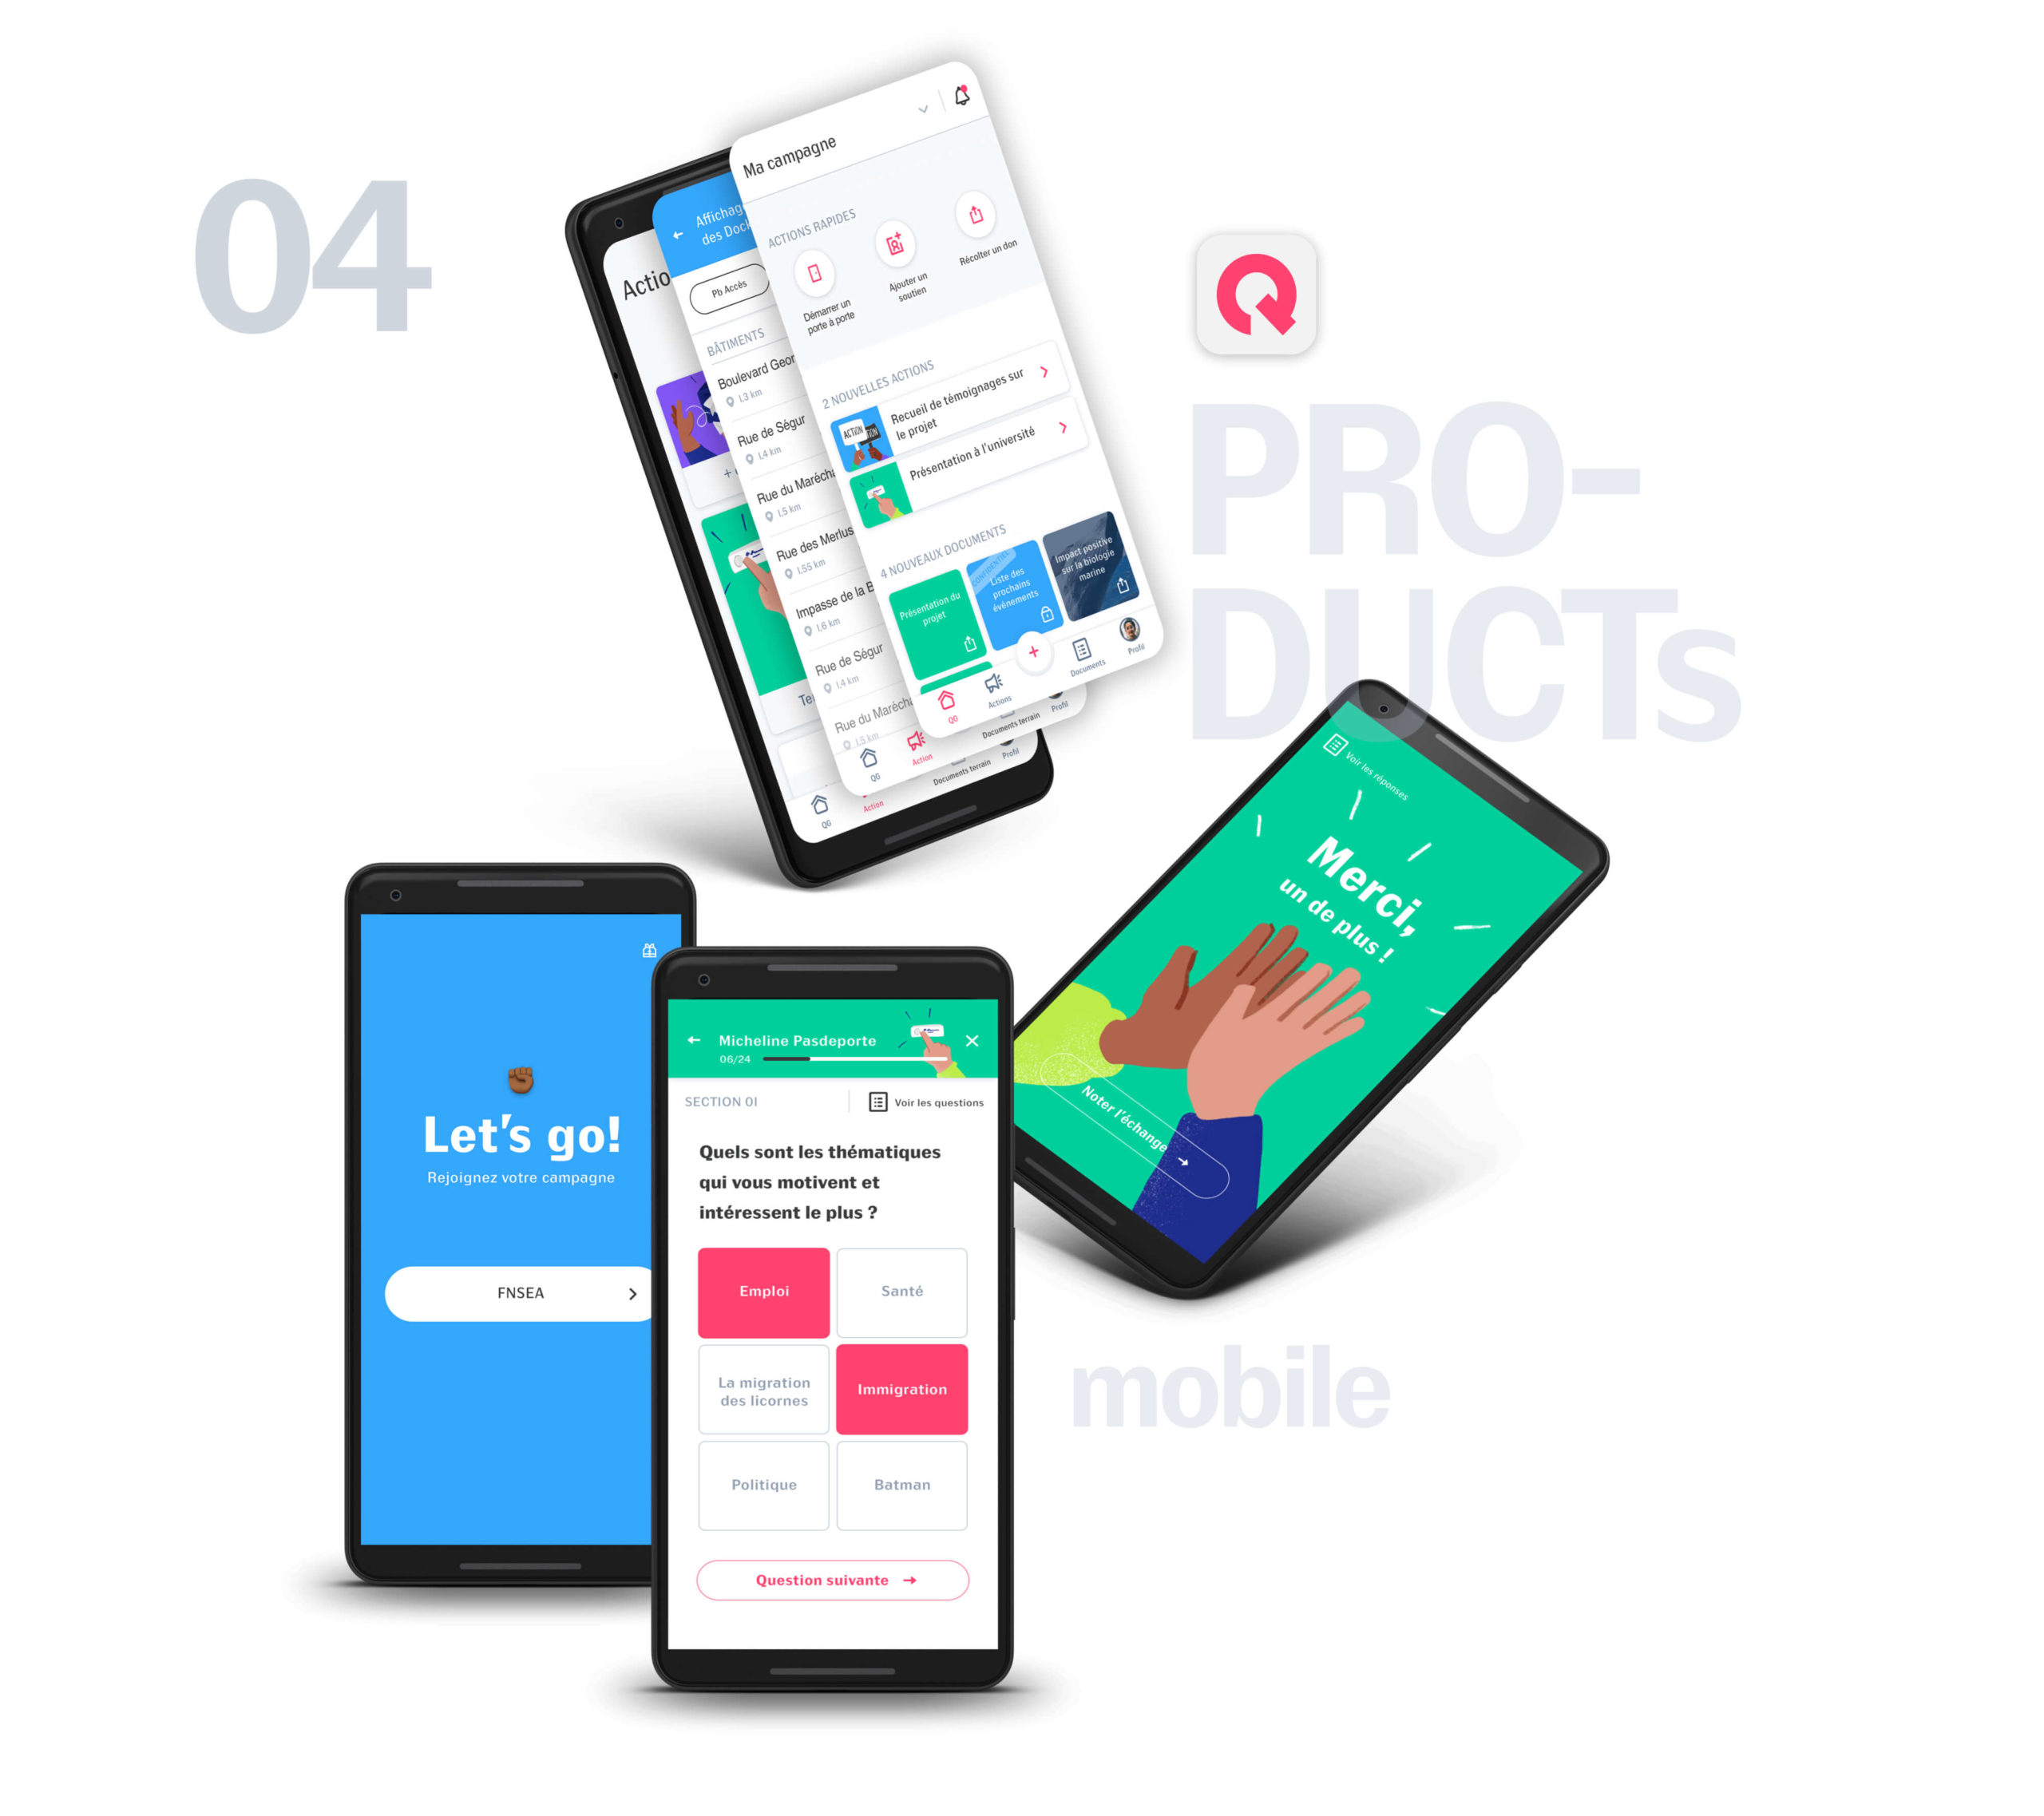 quorum-branding-ux-ui-desktop-app-mobile-illustration-05